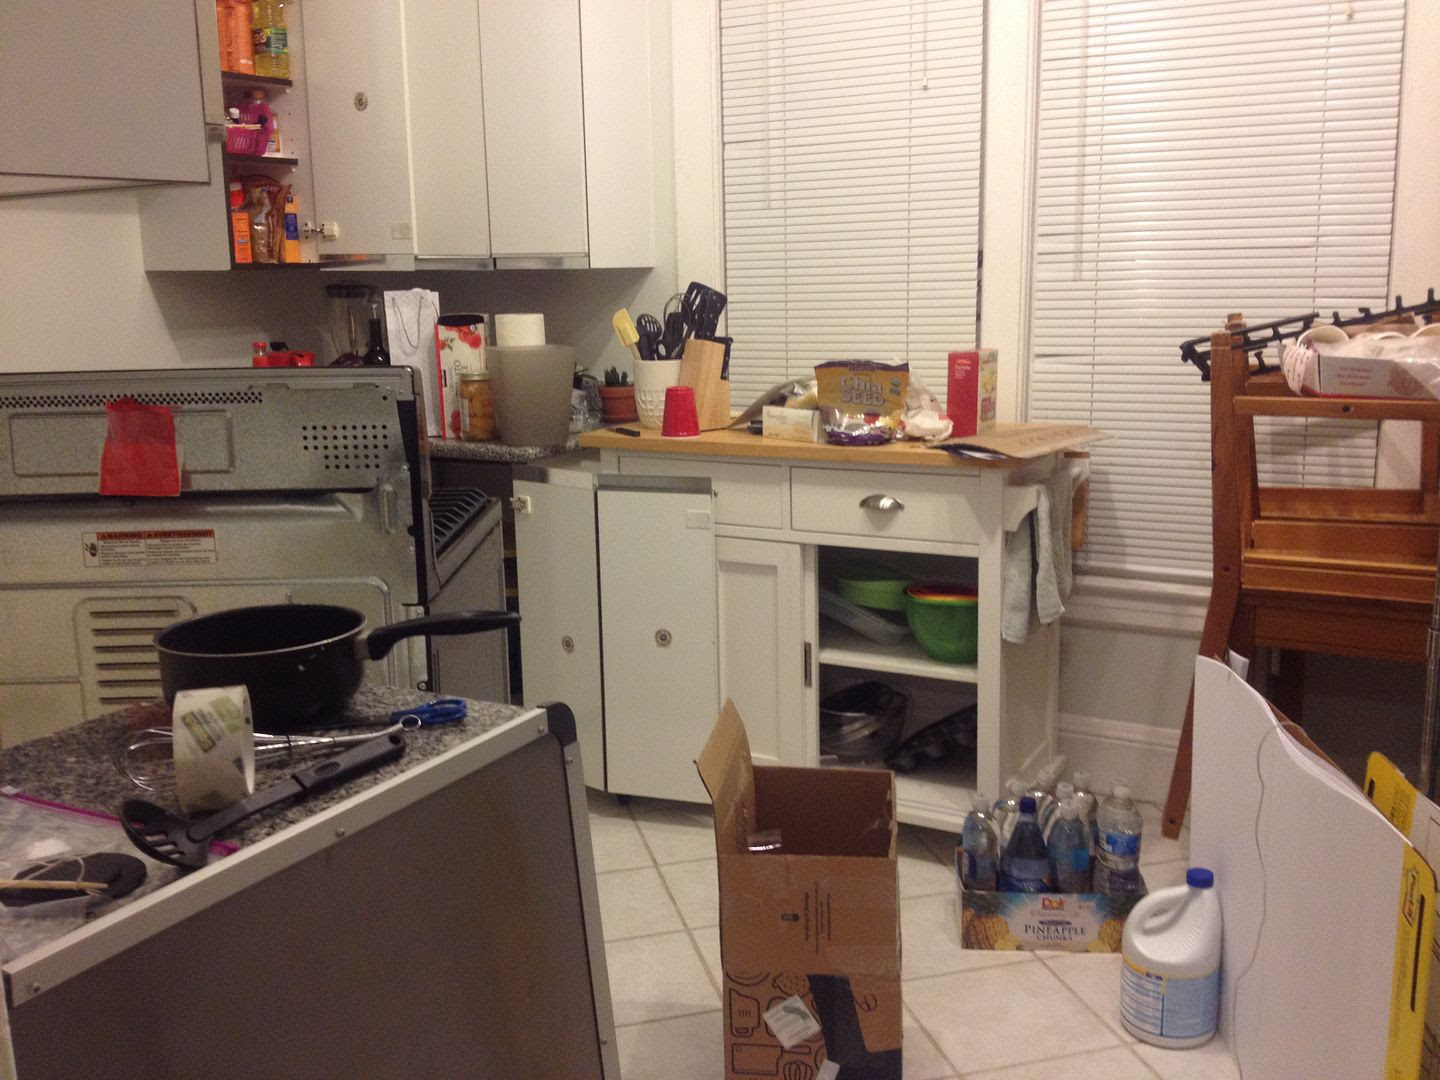 Our Kitchen Was a Disaster photo 2016-06-23 21.46.18_zpsz8jobrgd.jpg